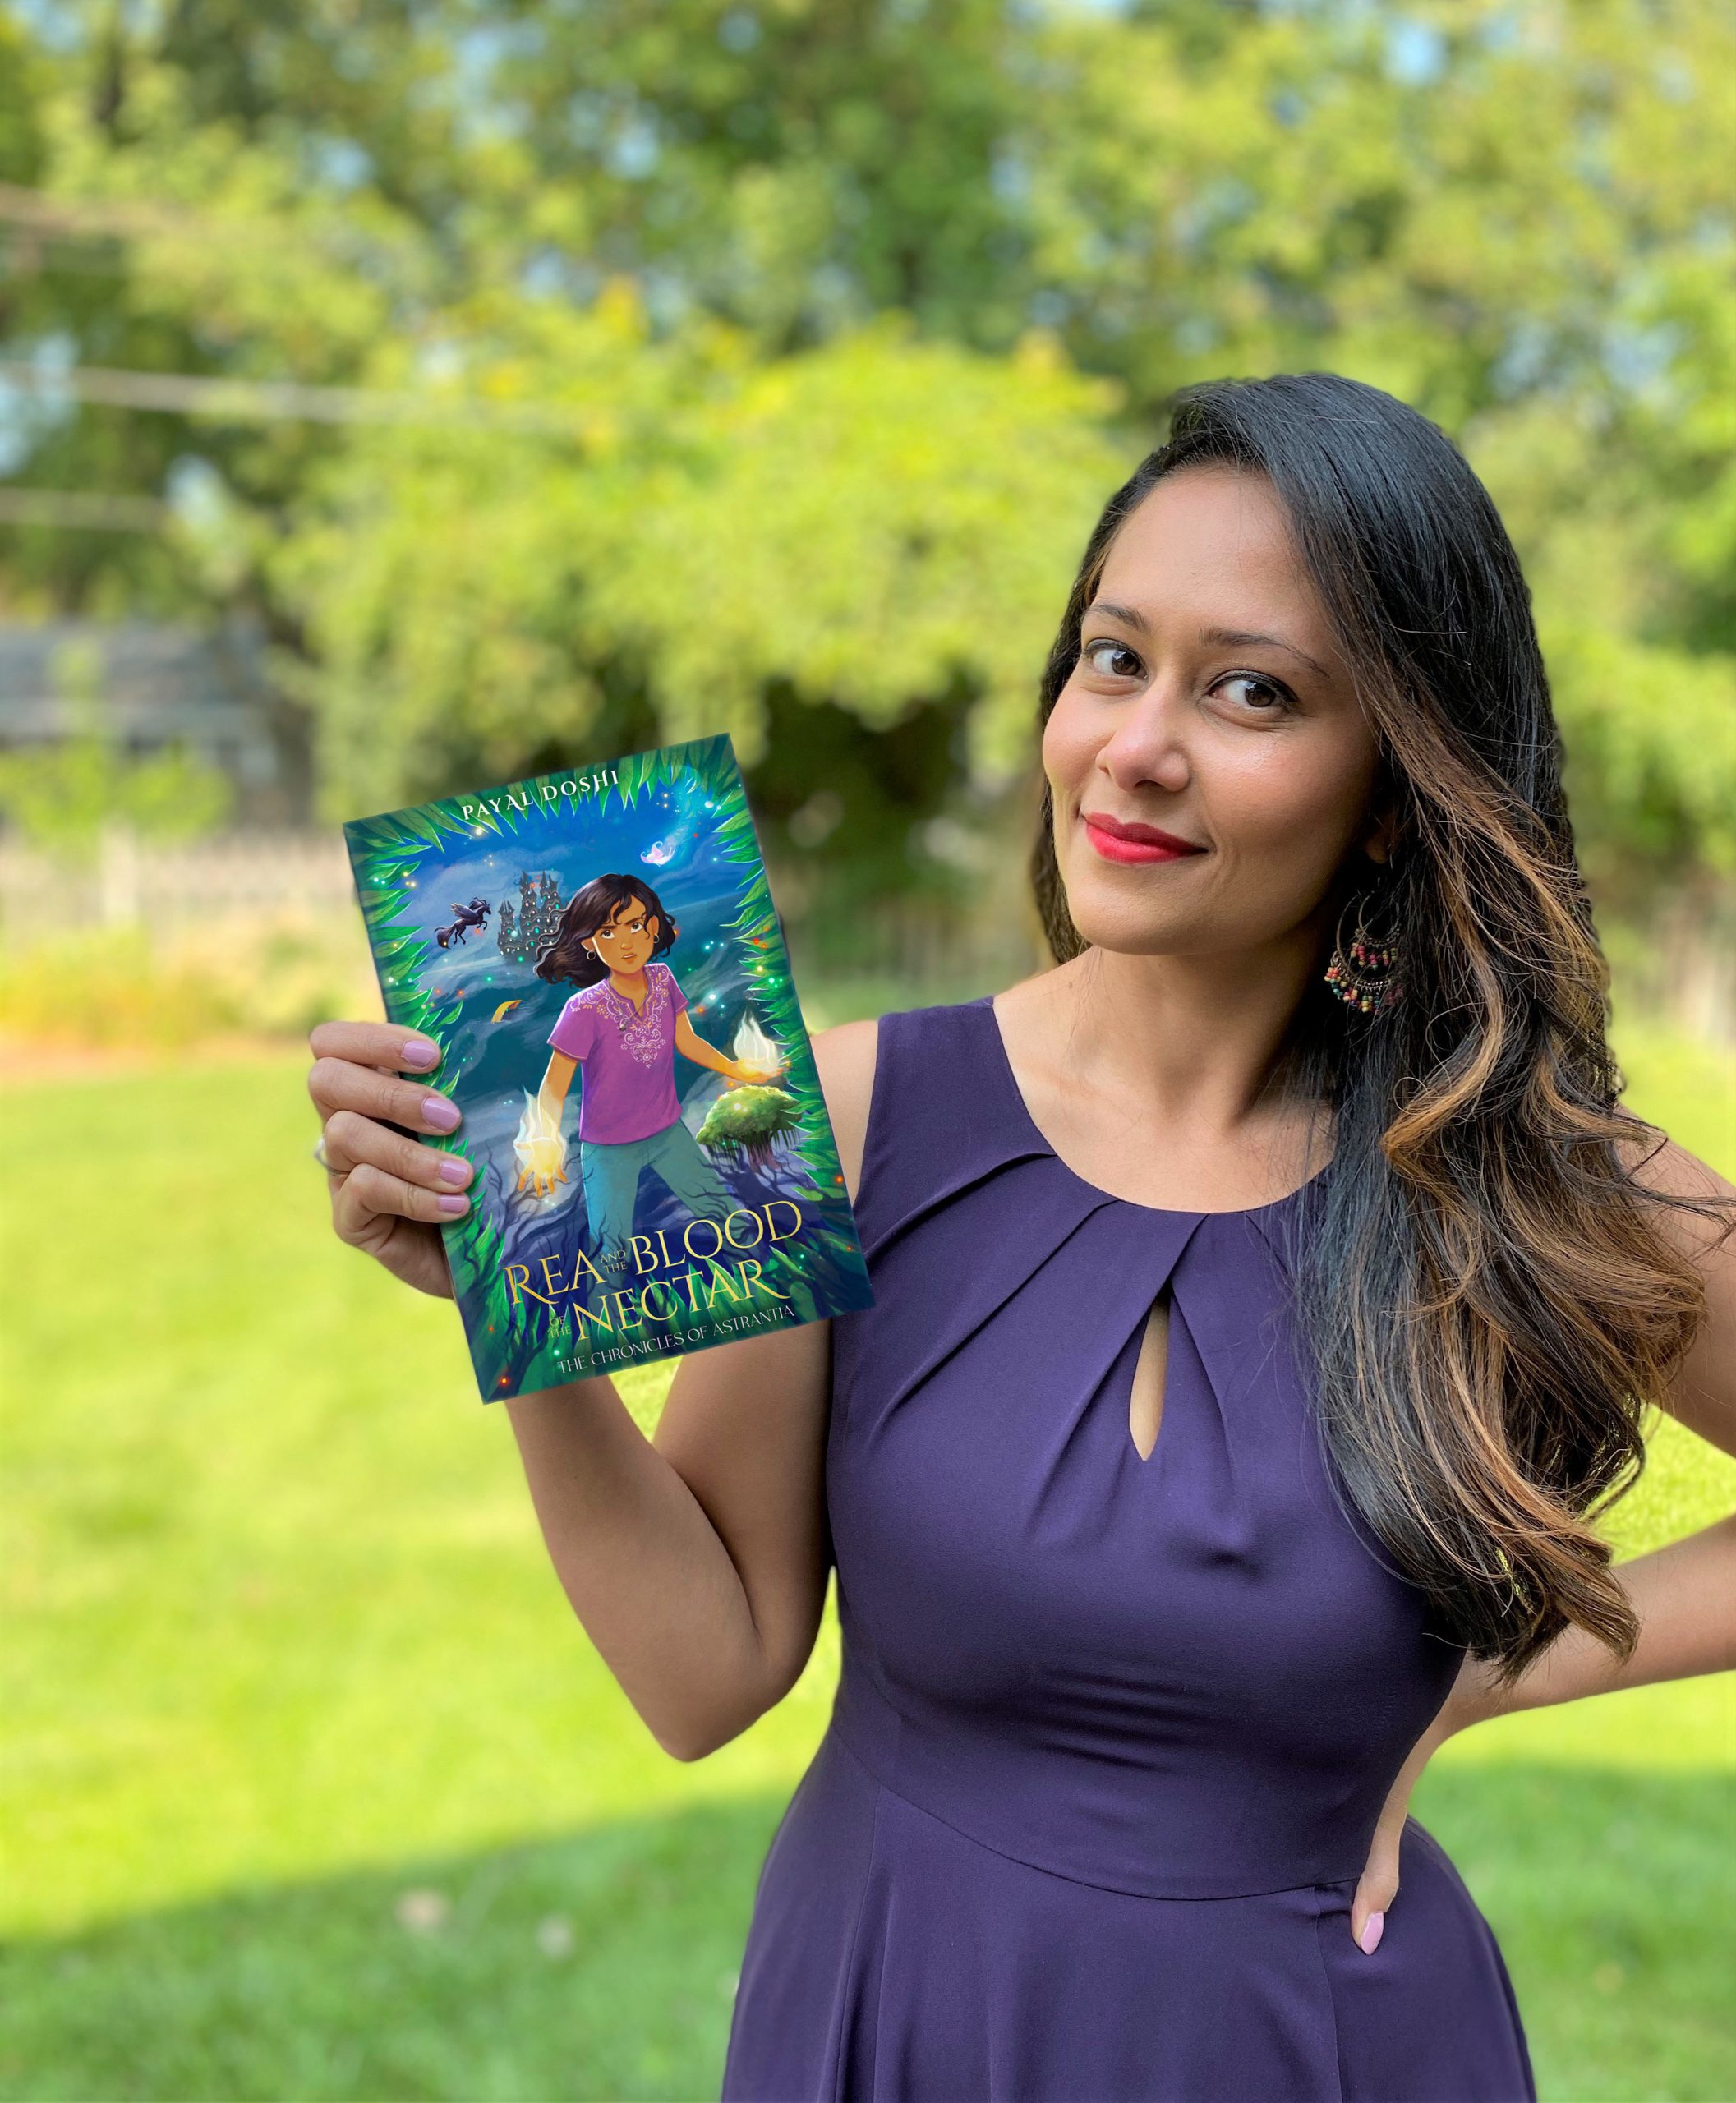 Middle-Grade Fantasy story featuring strong South Asian Characters: Interview and Giveaway with Payal Doshi